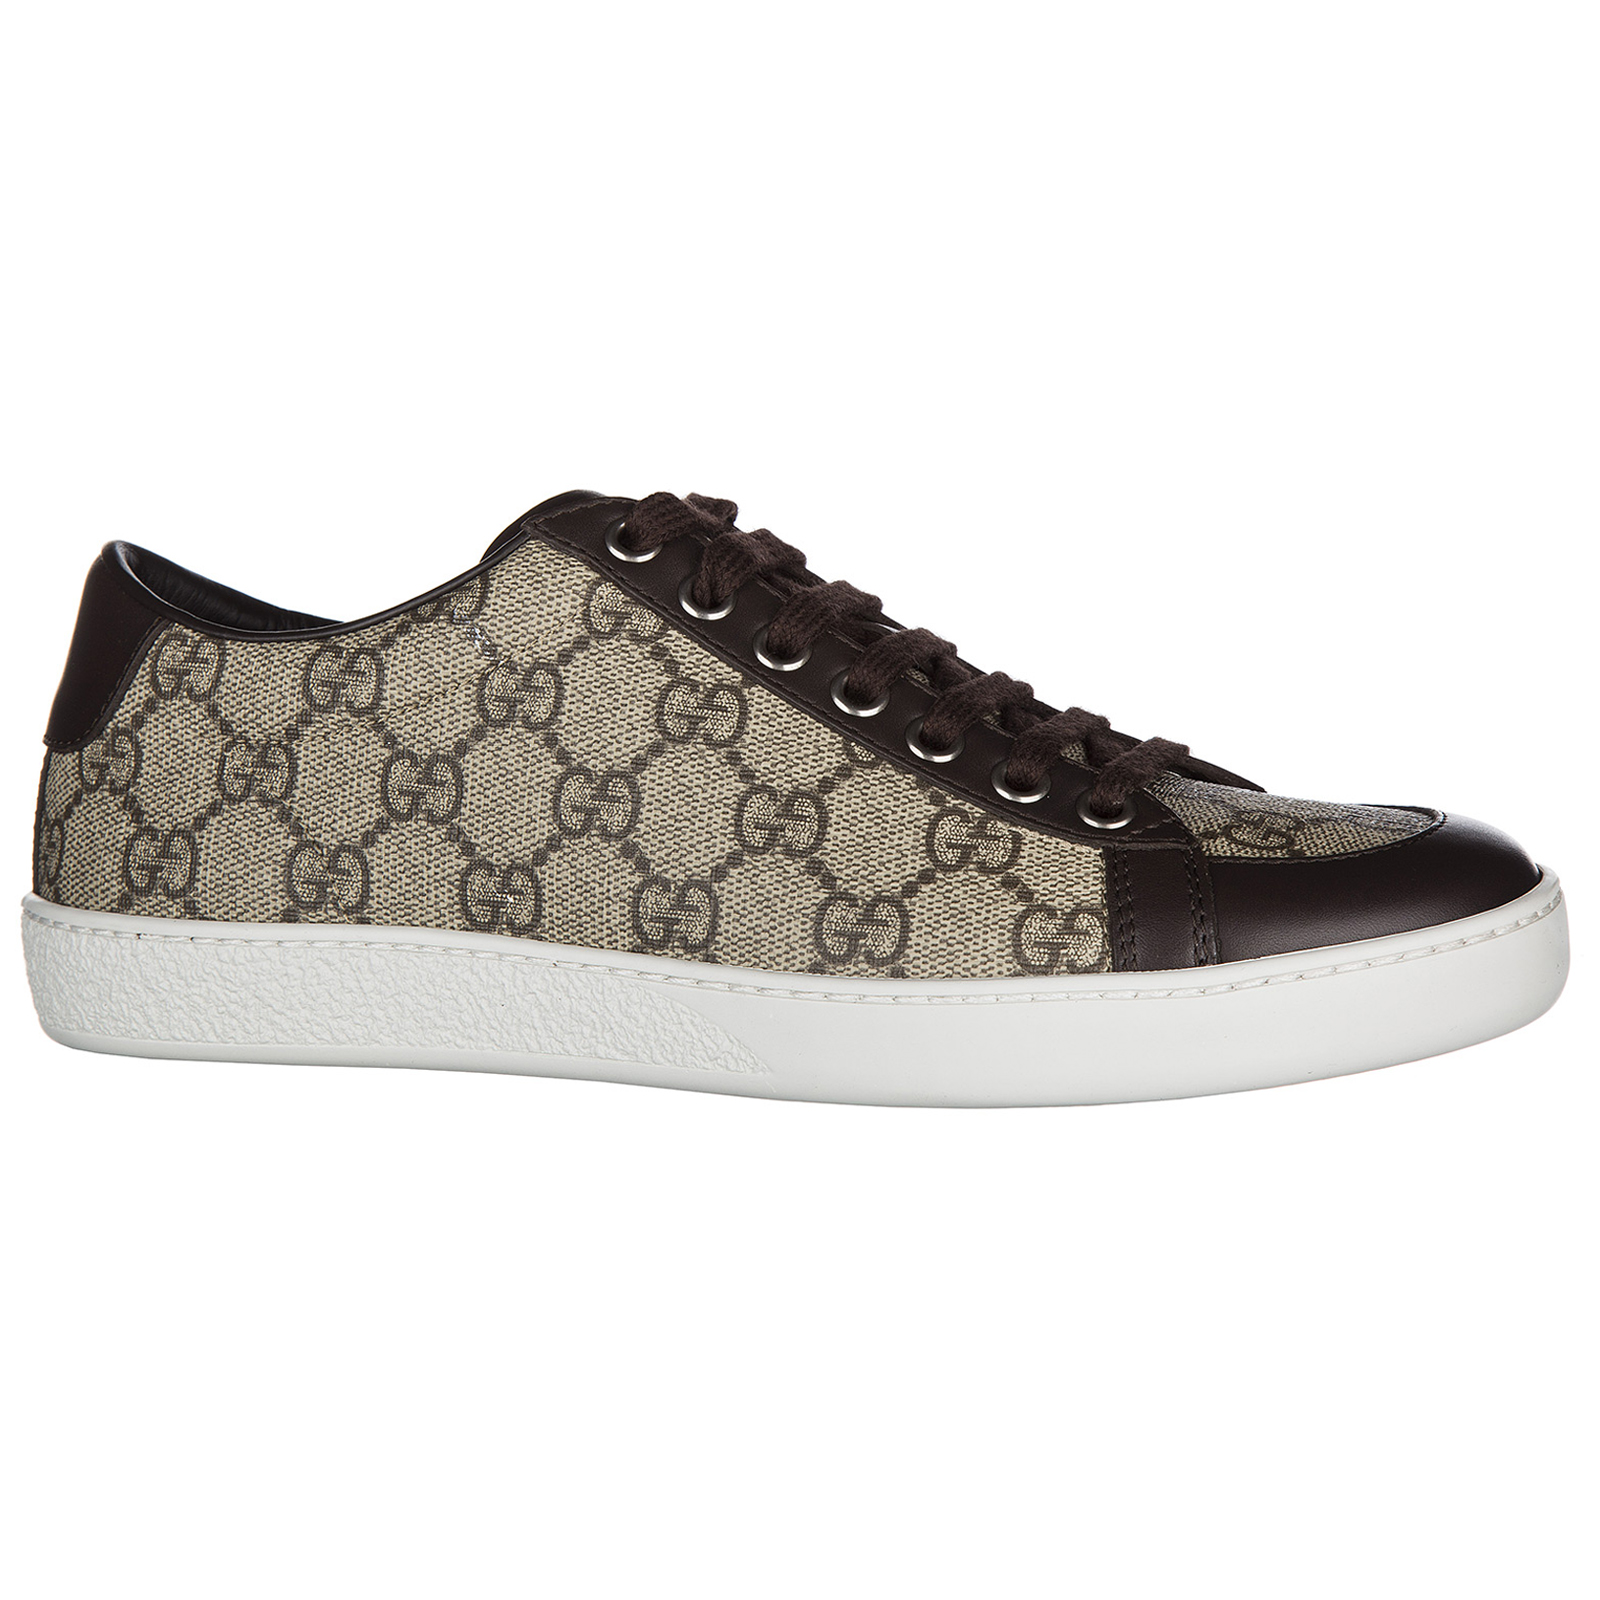 Scarpe sneakers donna  gg supreme brooklyn